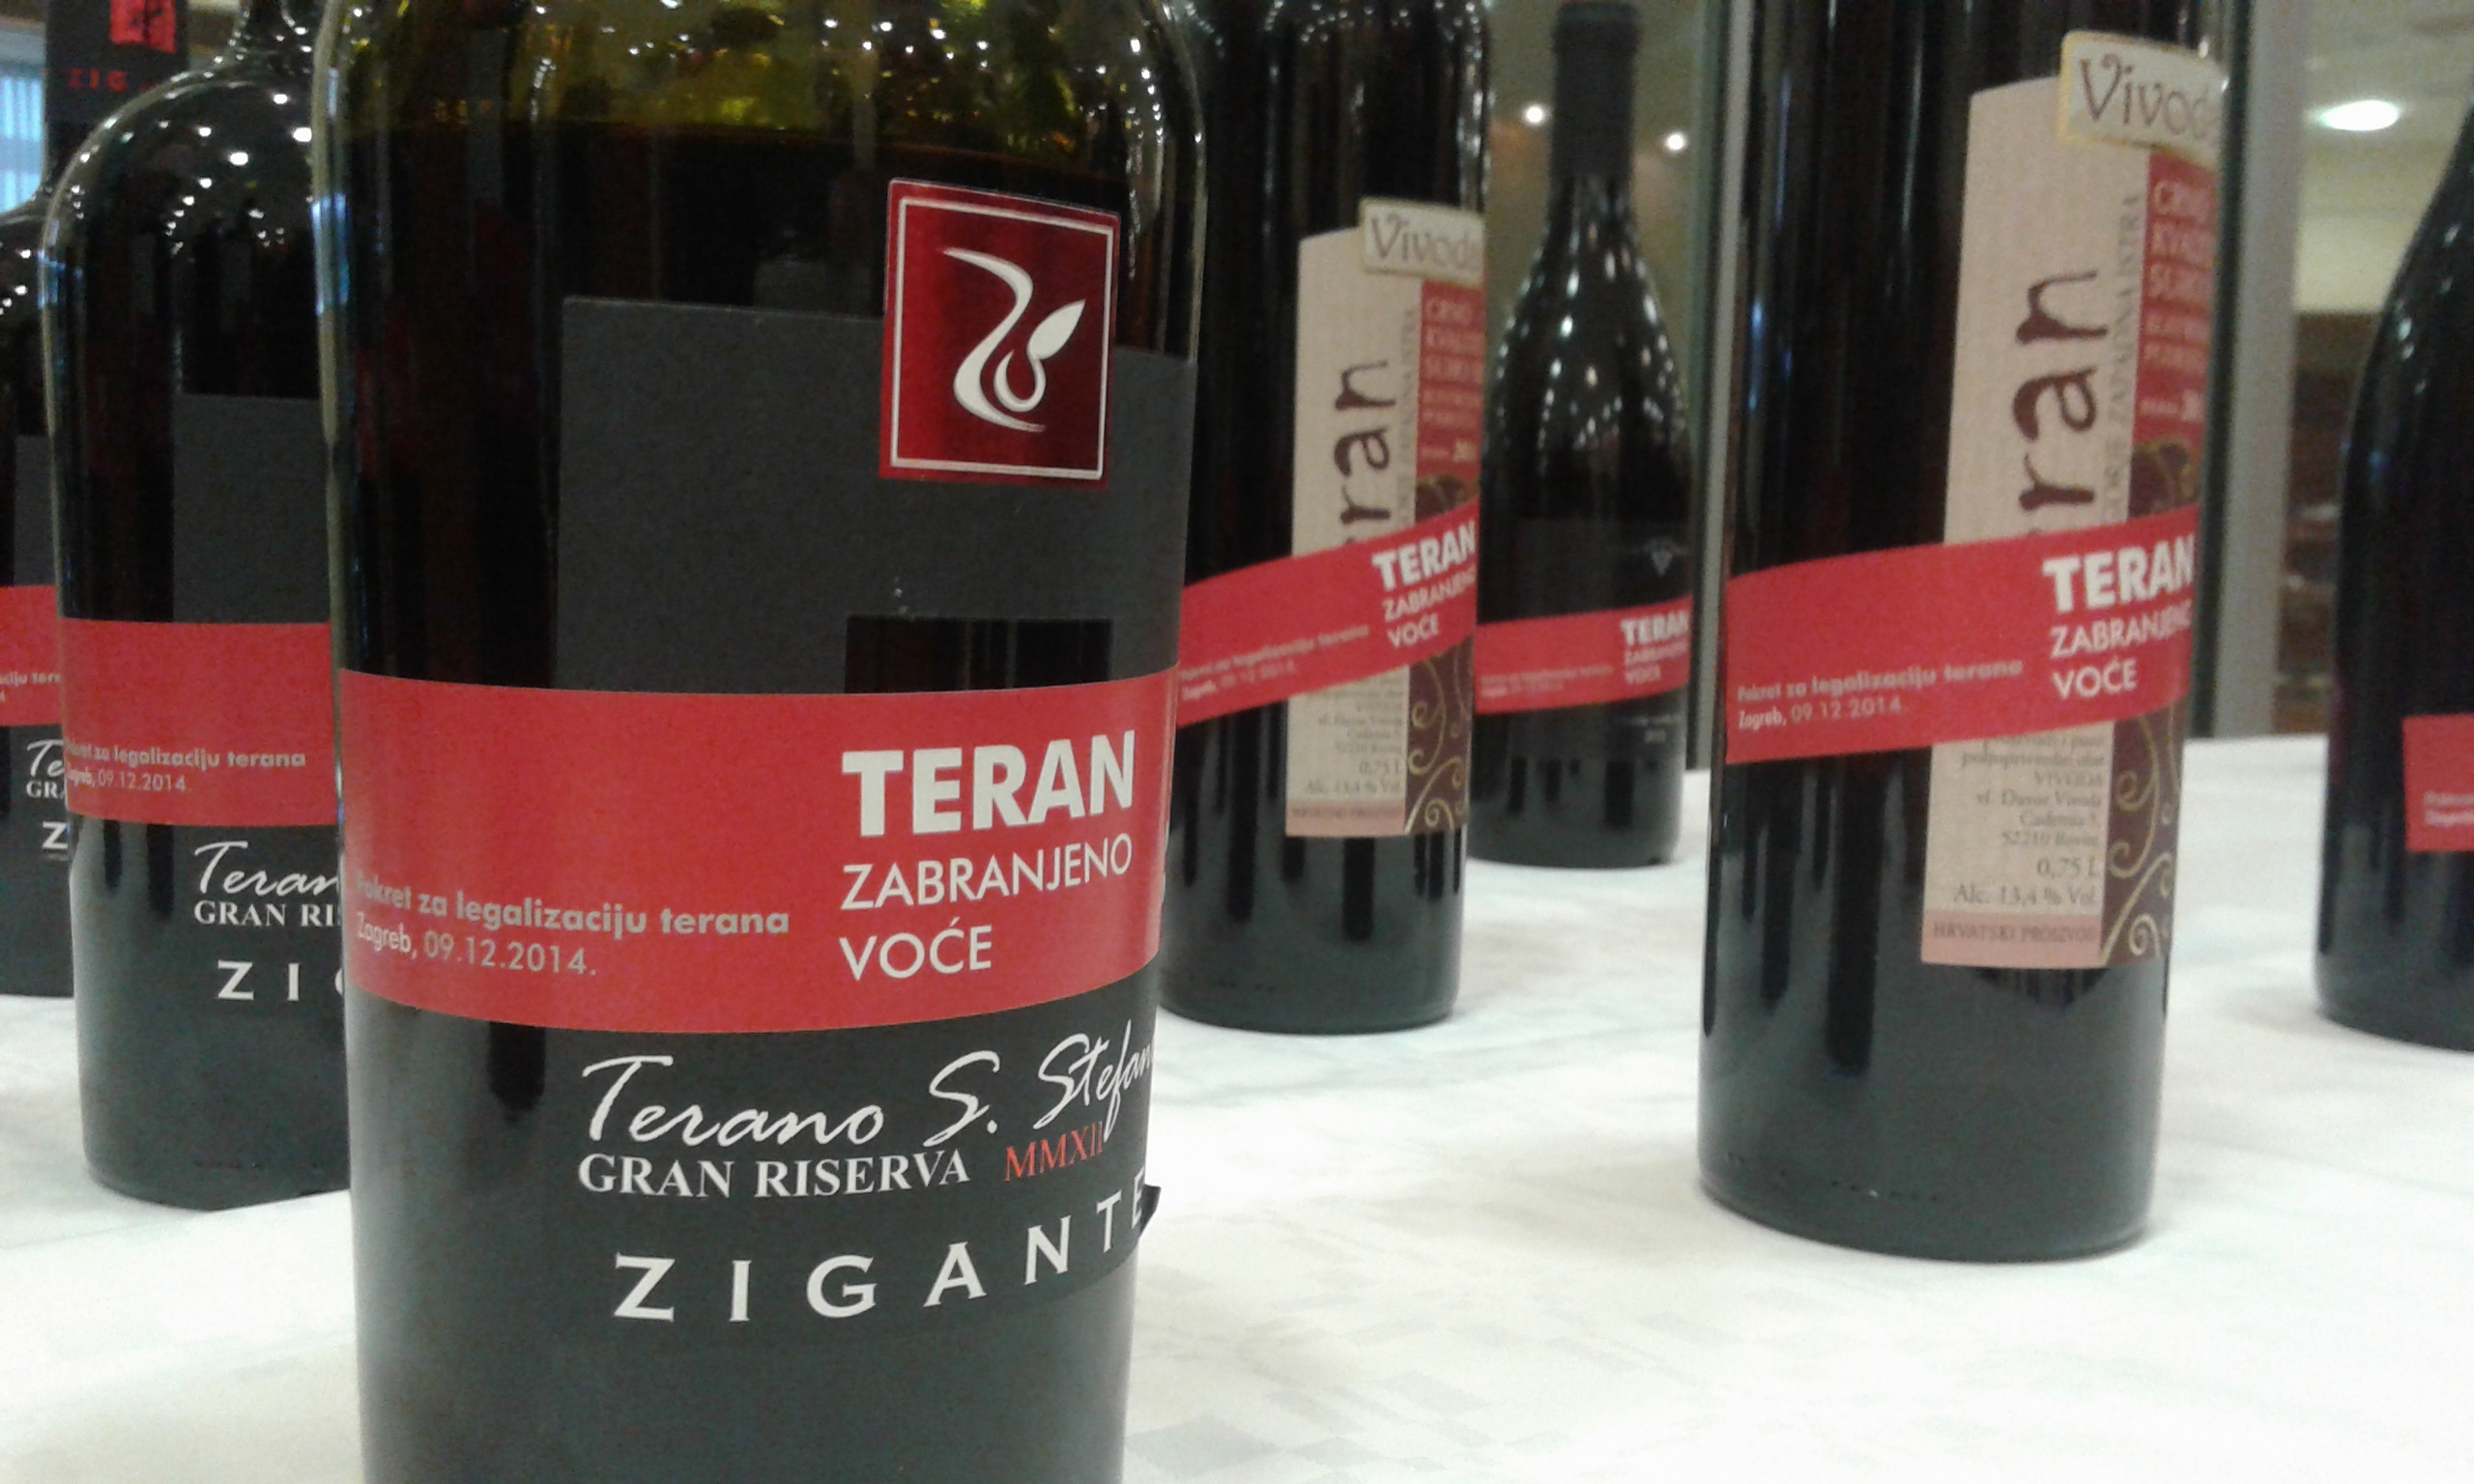 Croatian winemakers in Istria would be enabled to continue selling their wine made from the Teran grape variety under the name